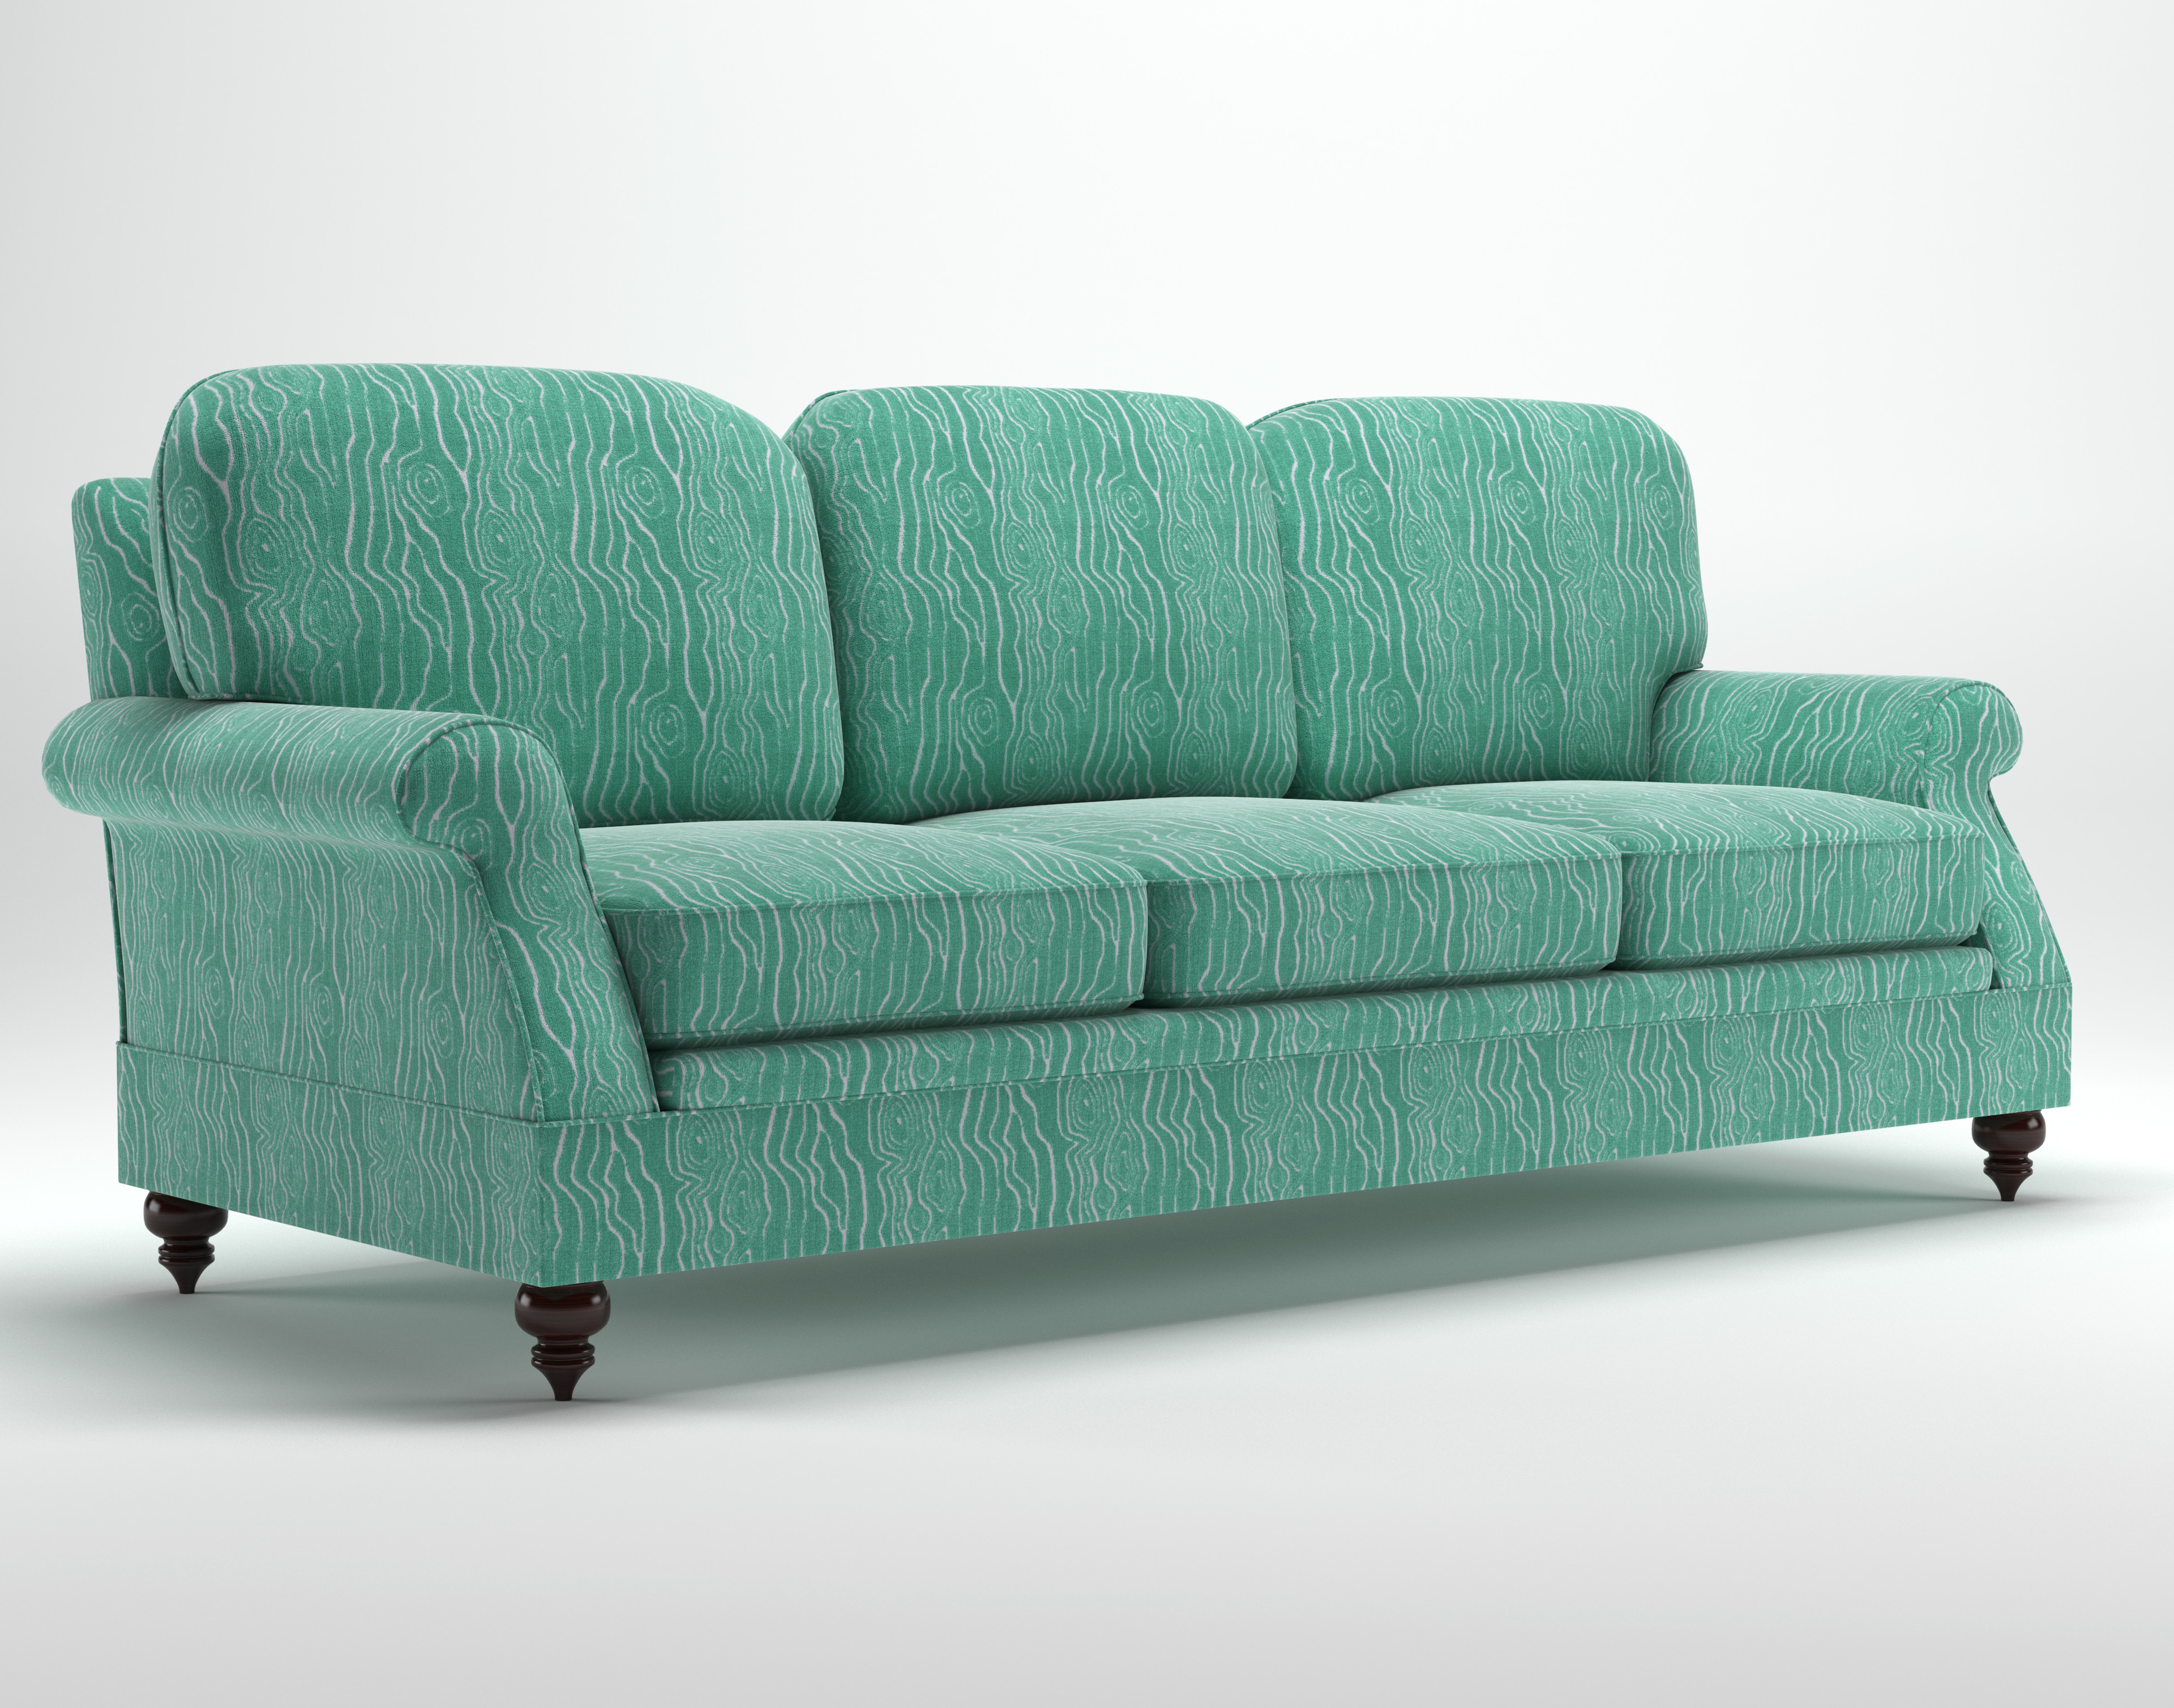 Sofa Style 3: Different style feet.